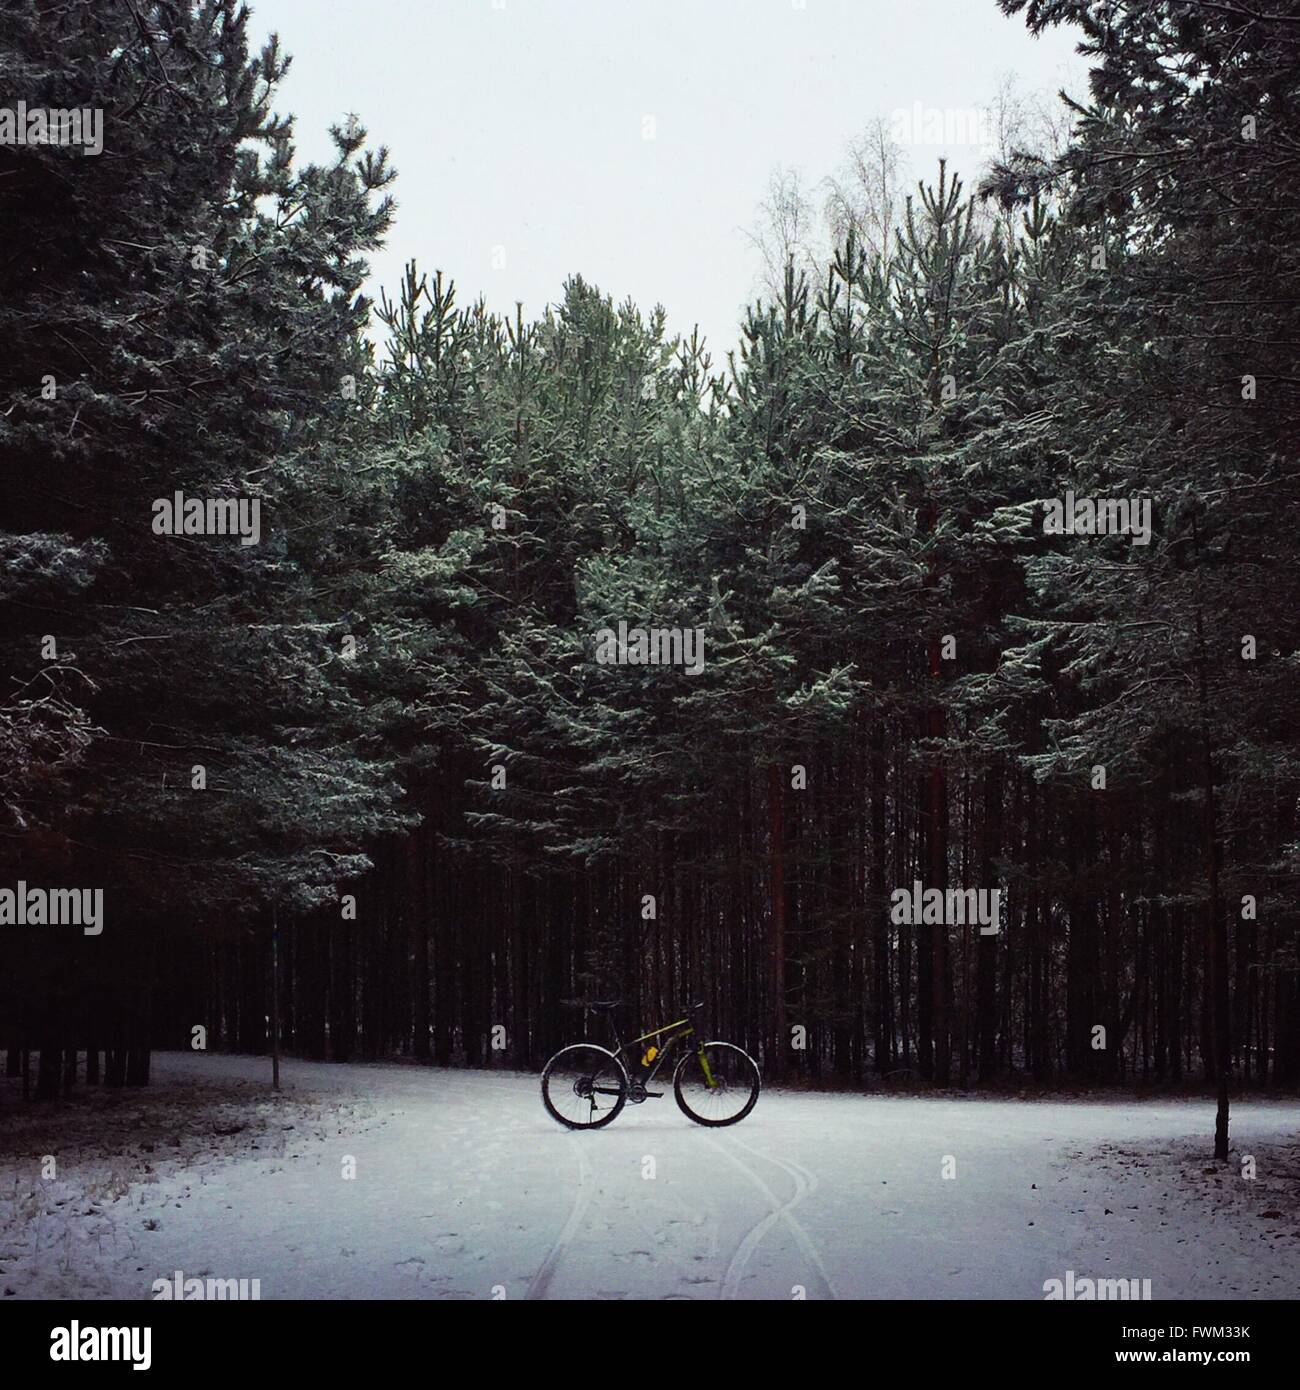 Bicycle Parked On Snow Covered Field Against Trees In Forest - Stock Image